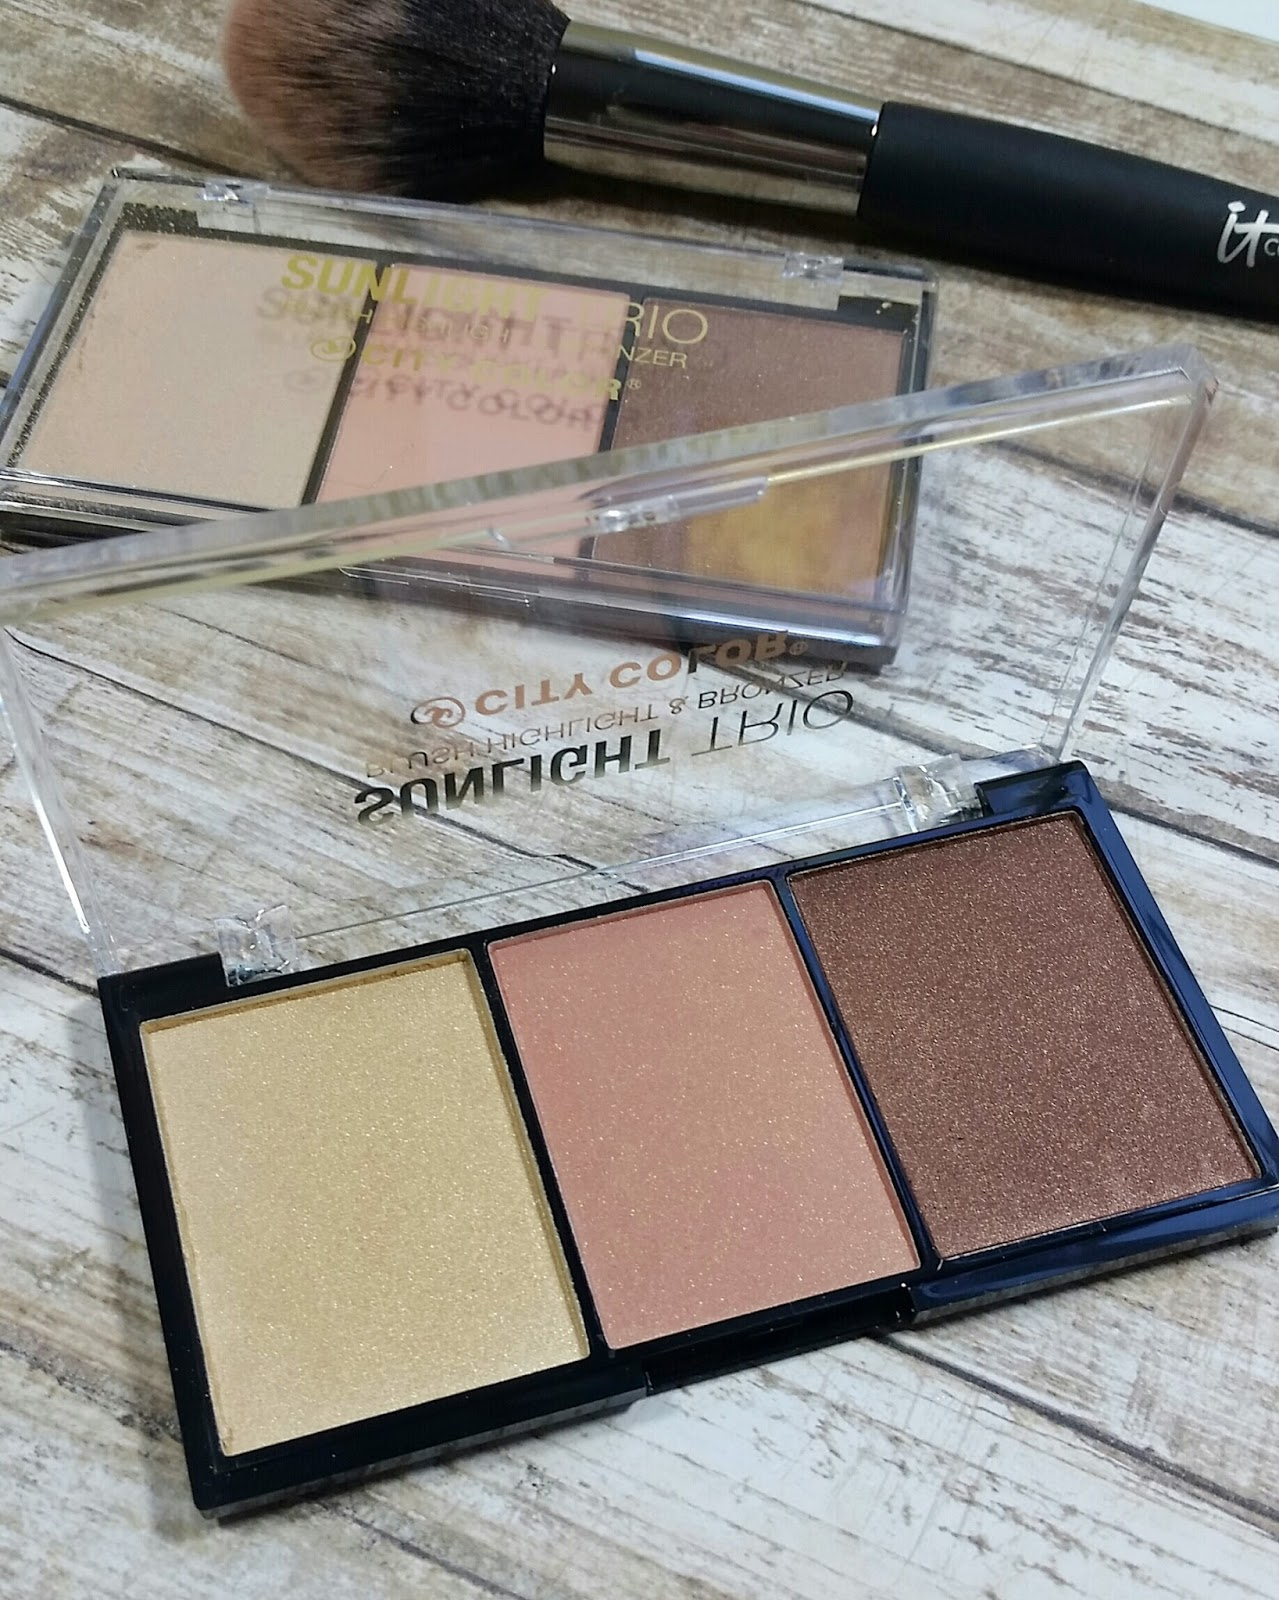 City Color Sunlight Trio Collection 1 review